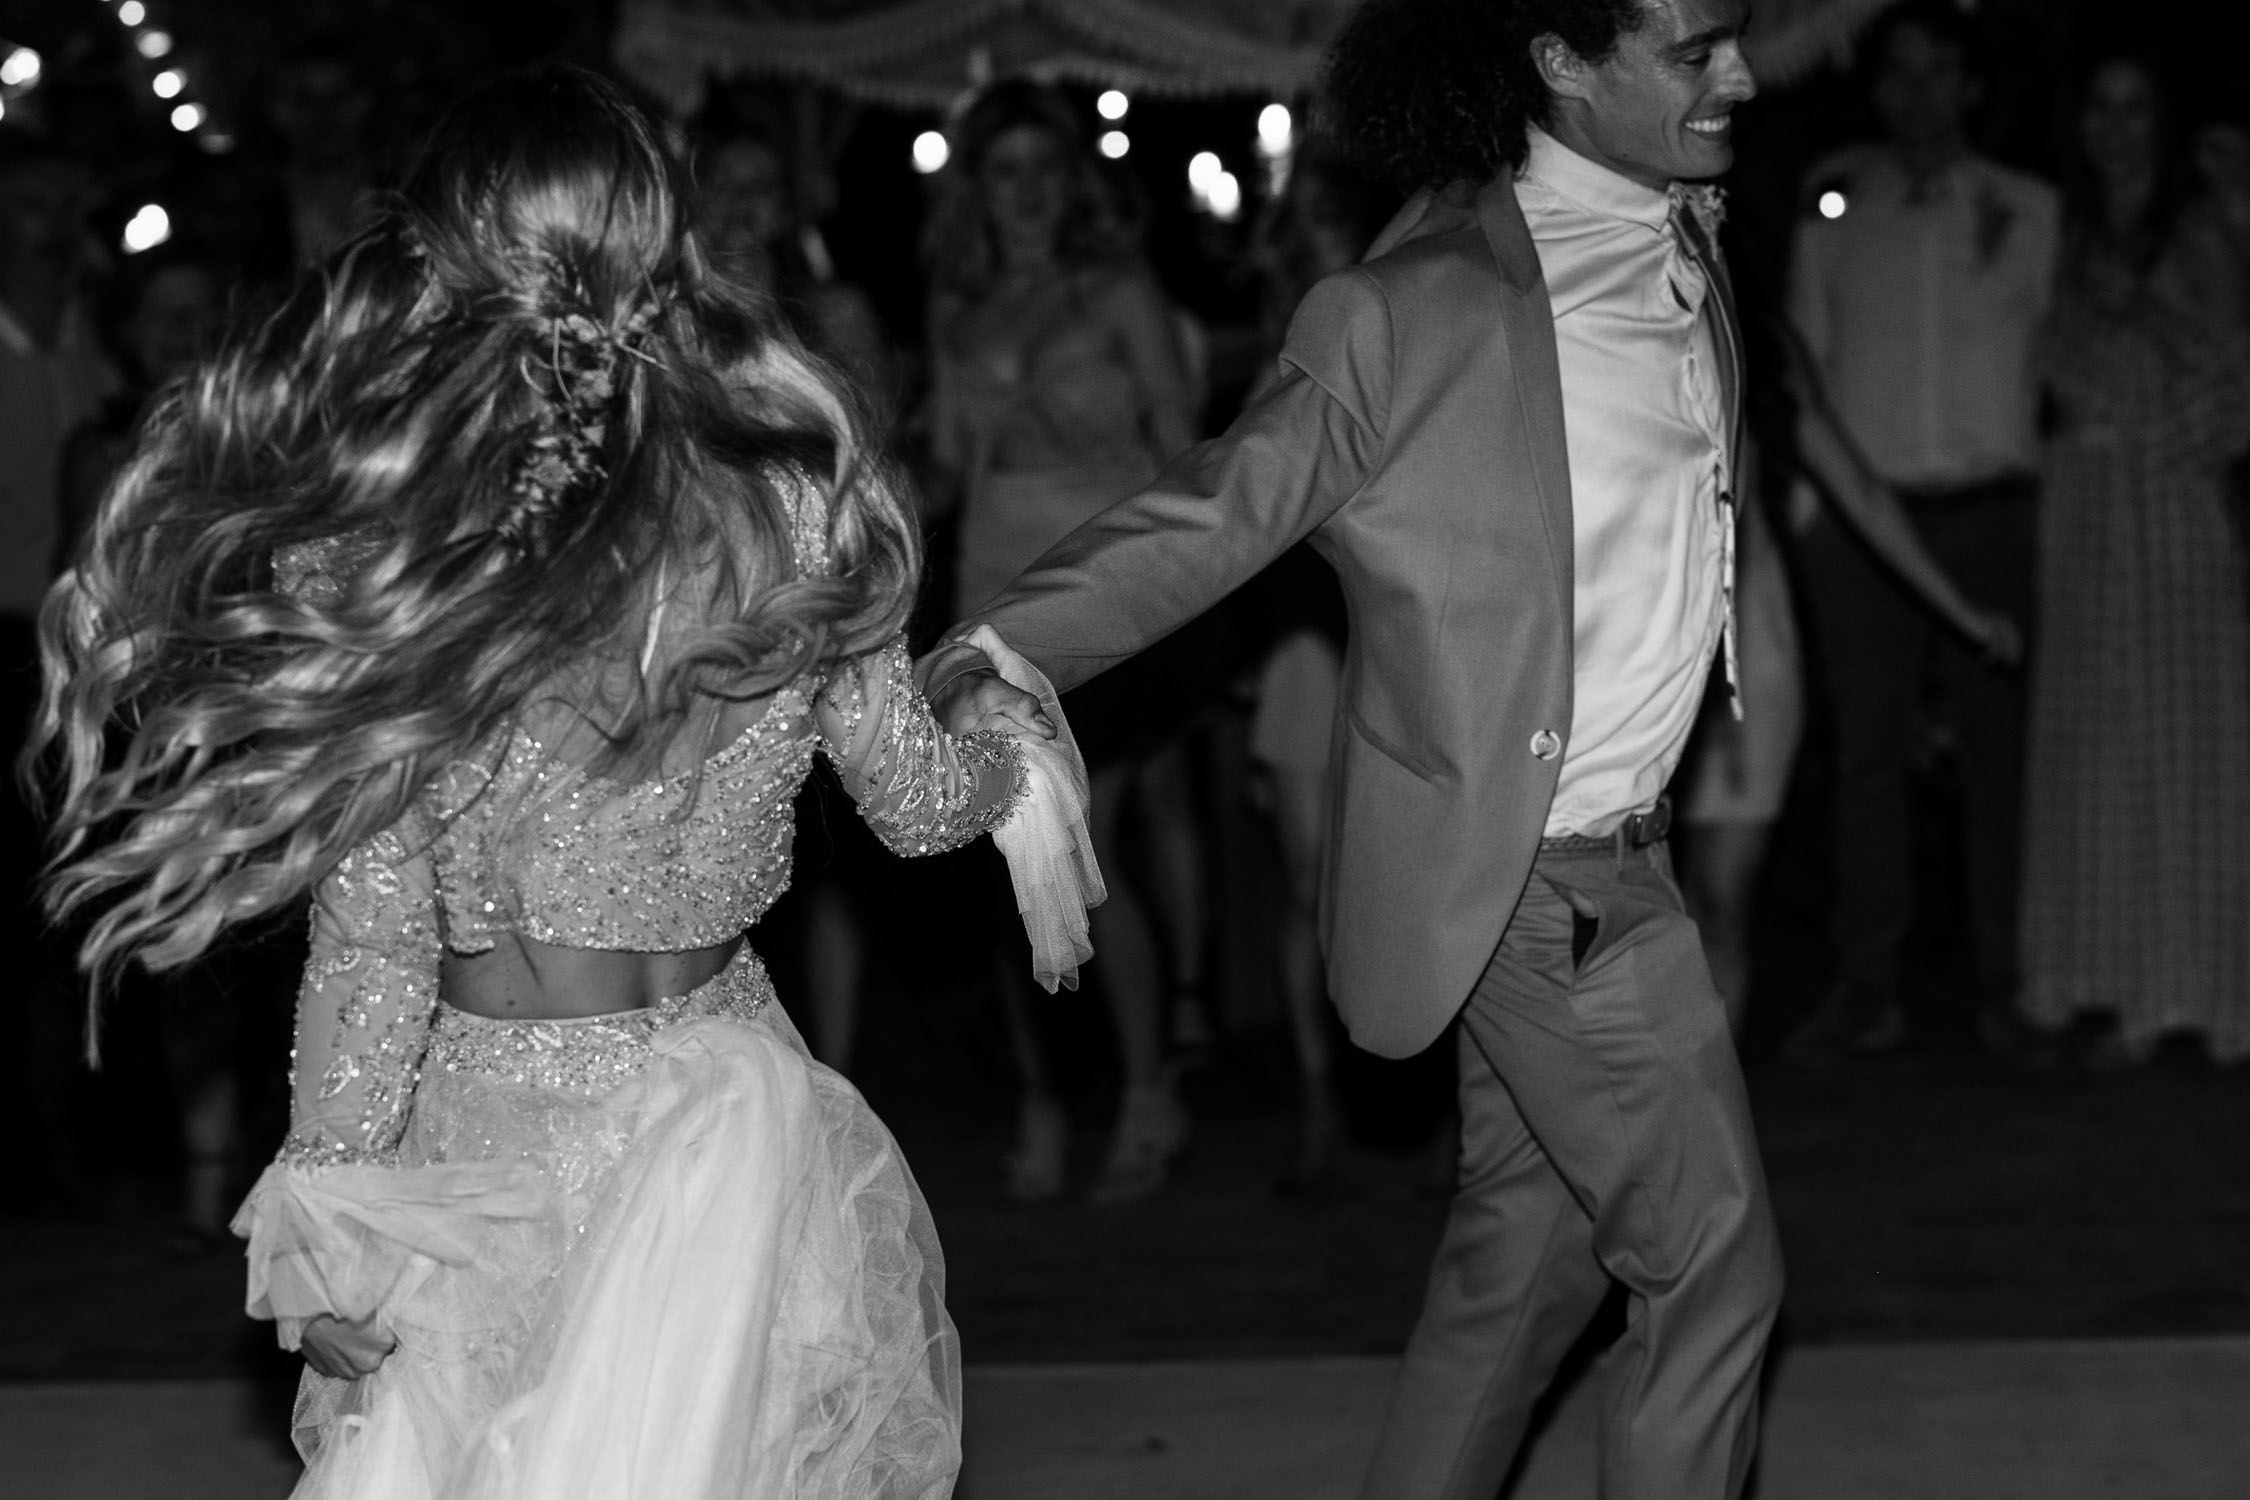 Grooms and bride spin during epic first dance